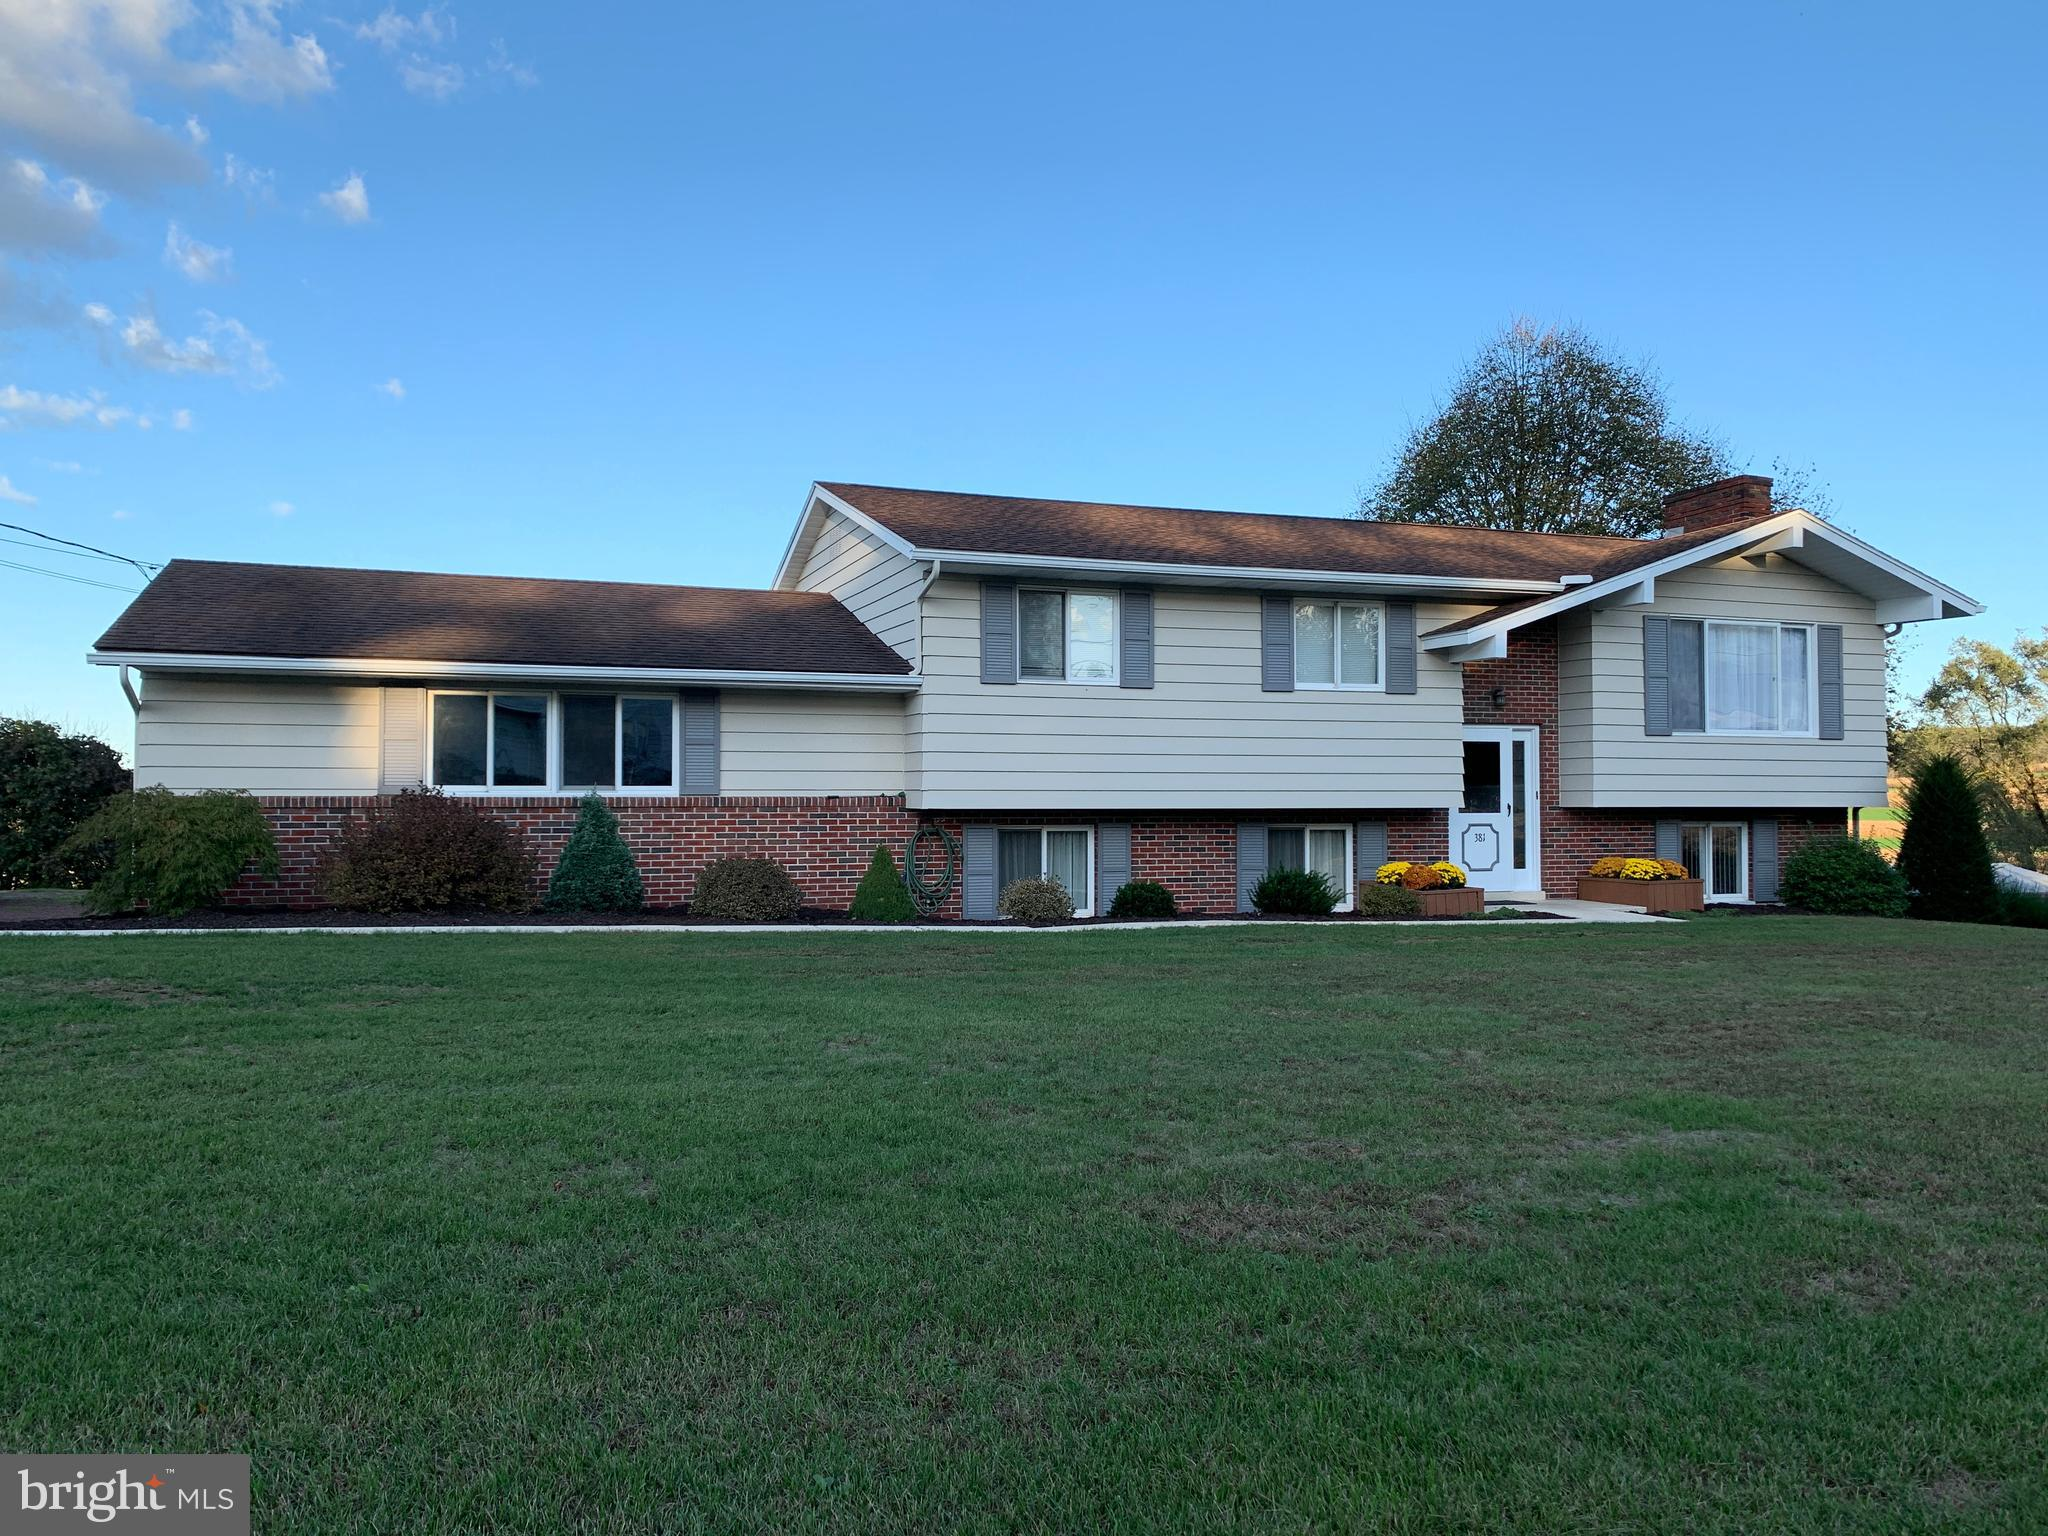 381 ARCHERY CLUB ROAD, NEW RINGGOLD, PA 17960